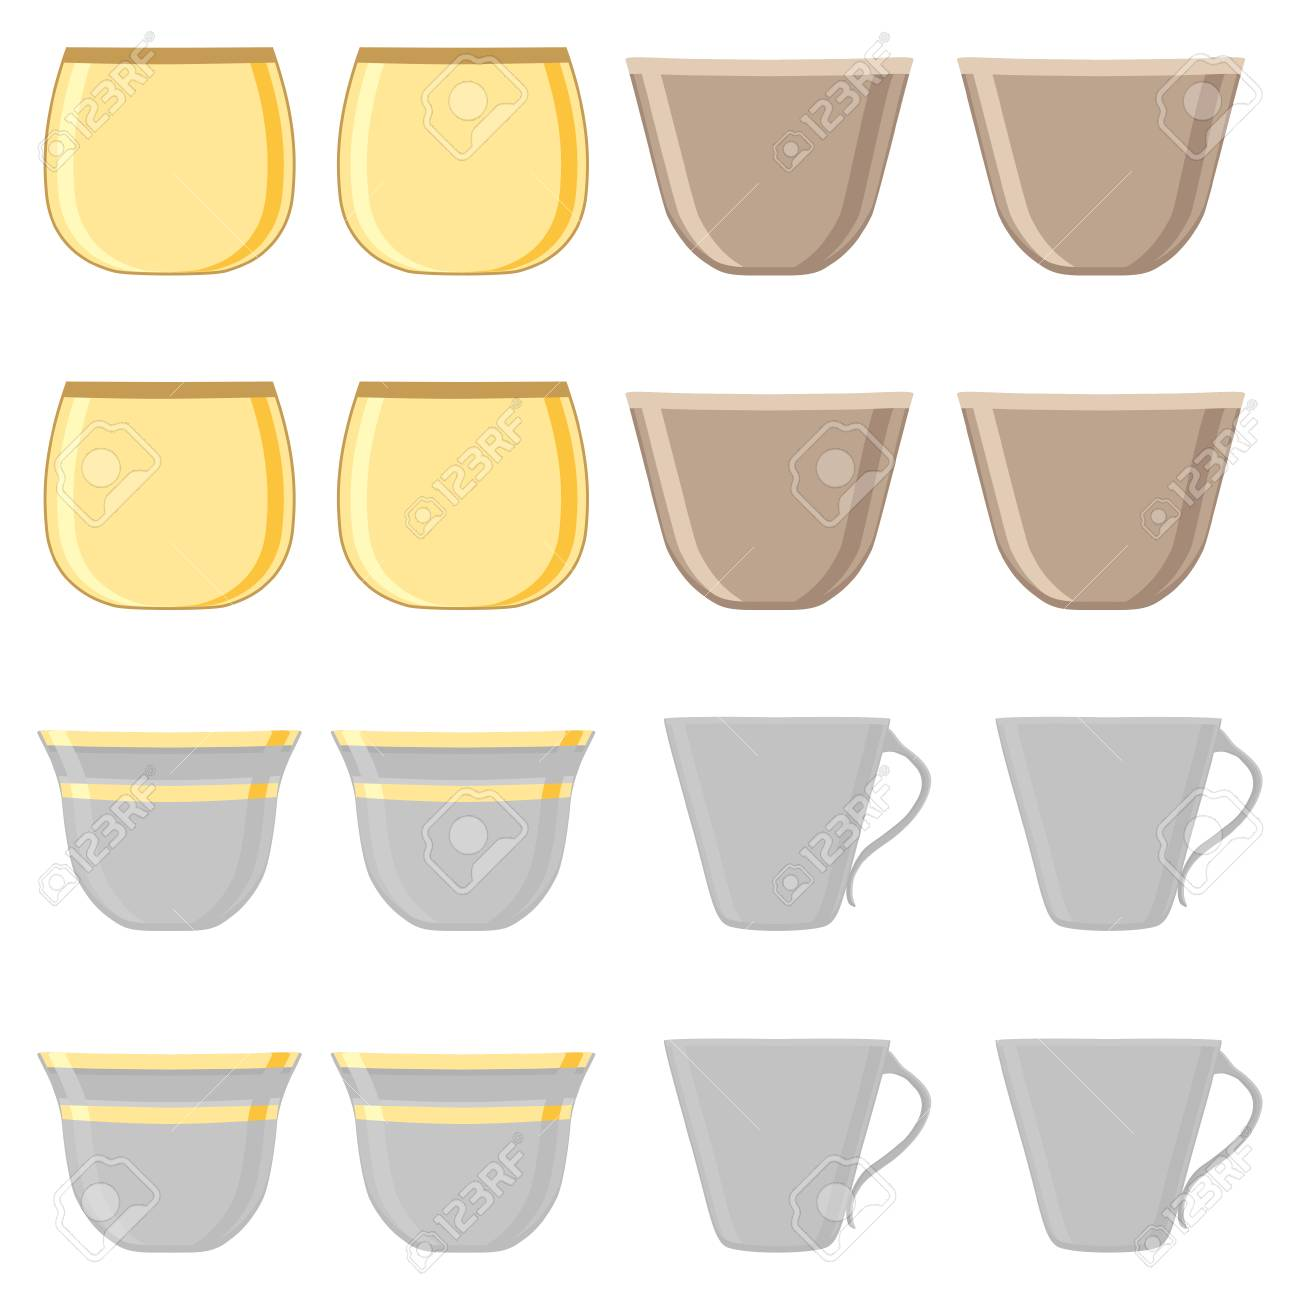 Illustration On Theme Big Colored Set Different Types Cups Mugs Royalty Free Cliparts Vectors And Stock Illustration Image 117350599